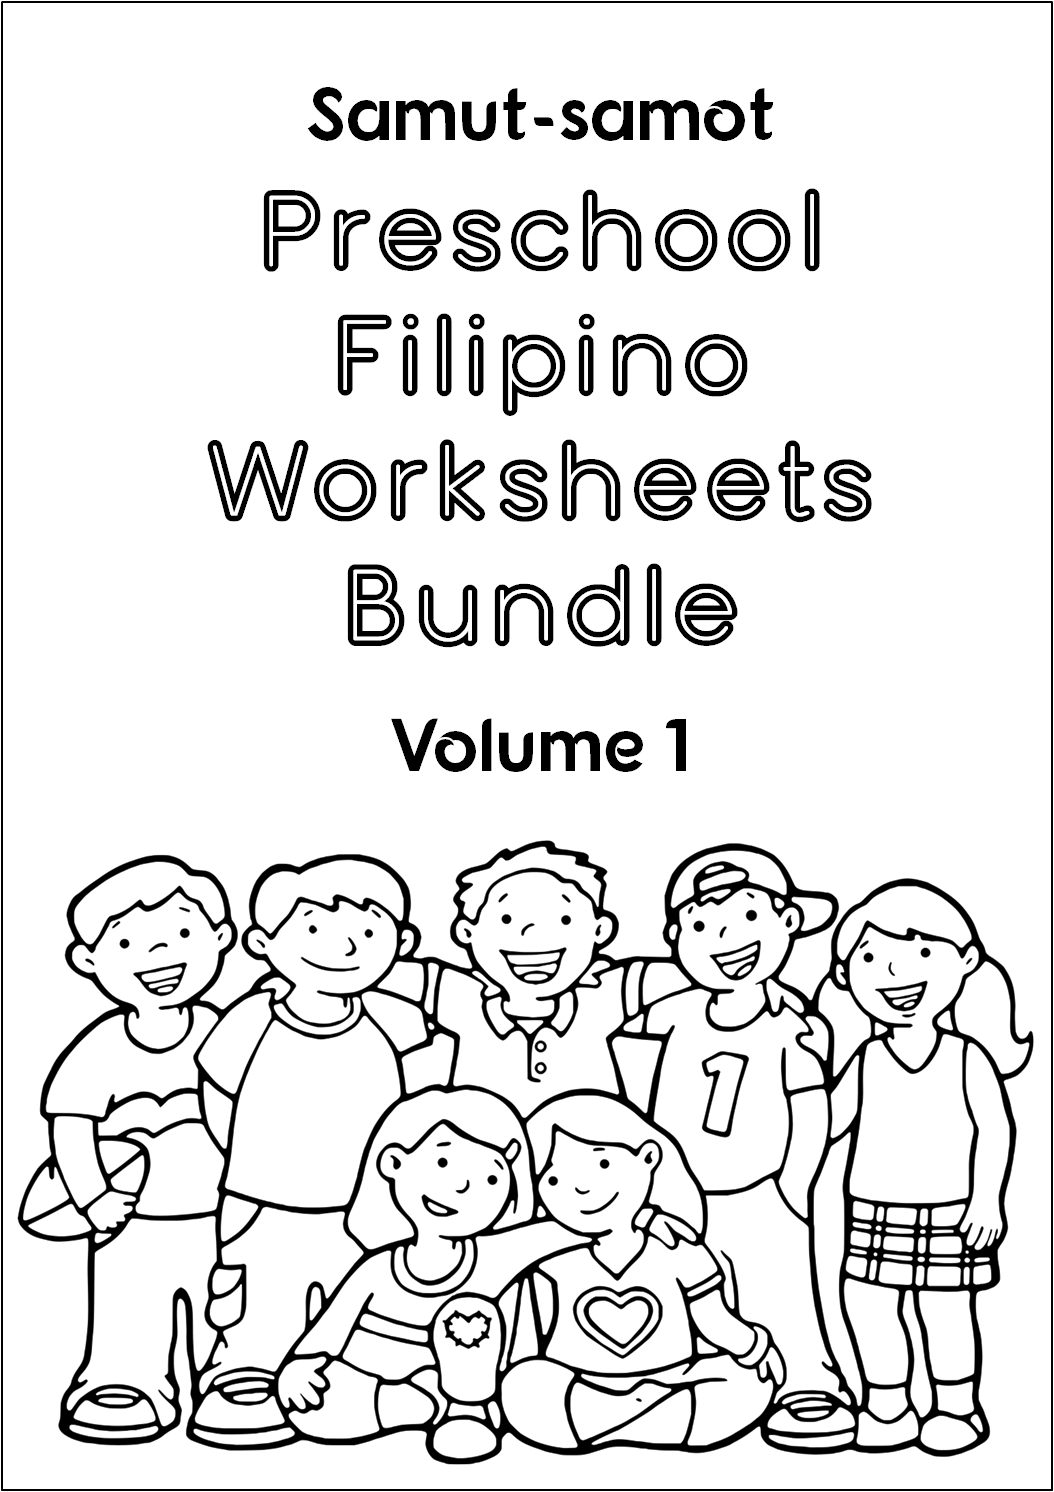 Worksheets Pictograph Tagalog Worksheets filipino reading comprehension worksheets for grade 2 math worksheet 1 pictograph for